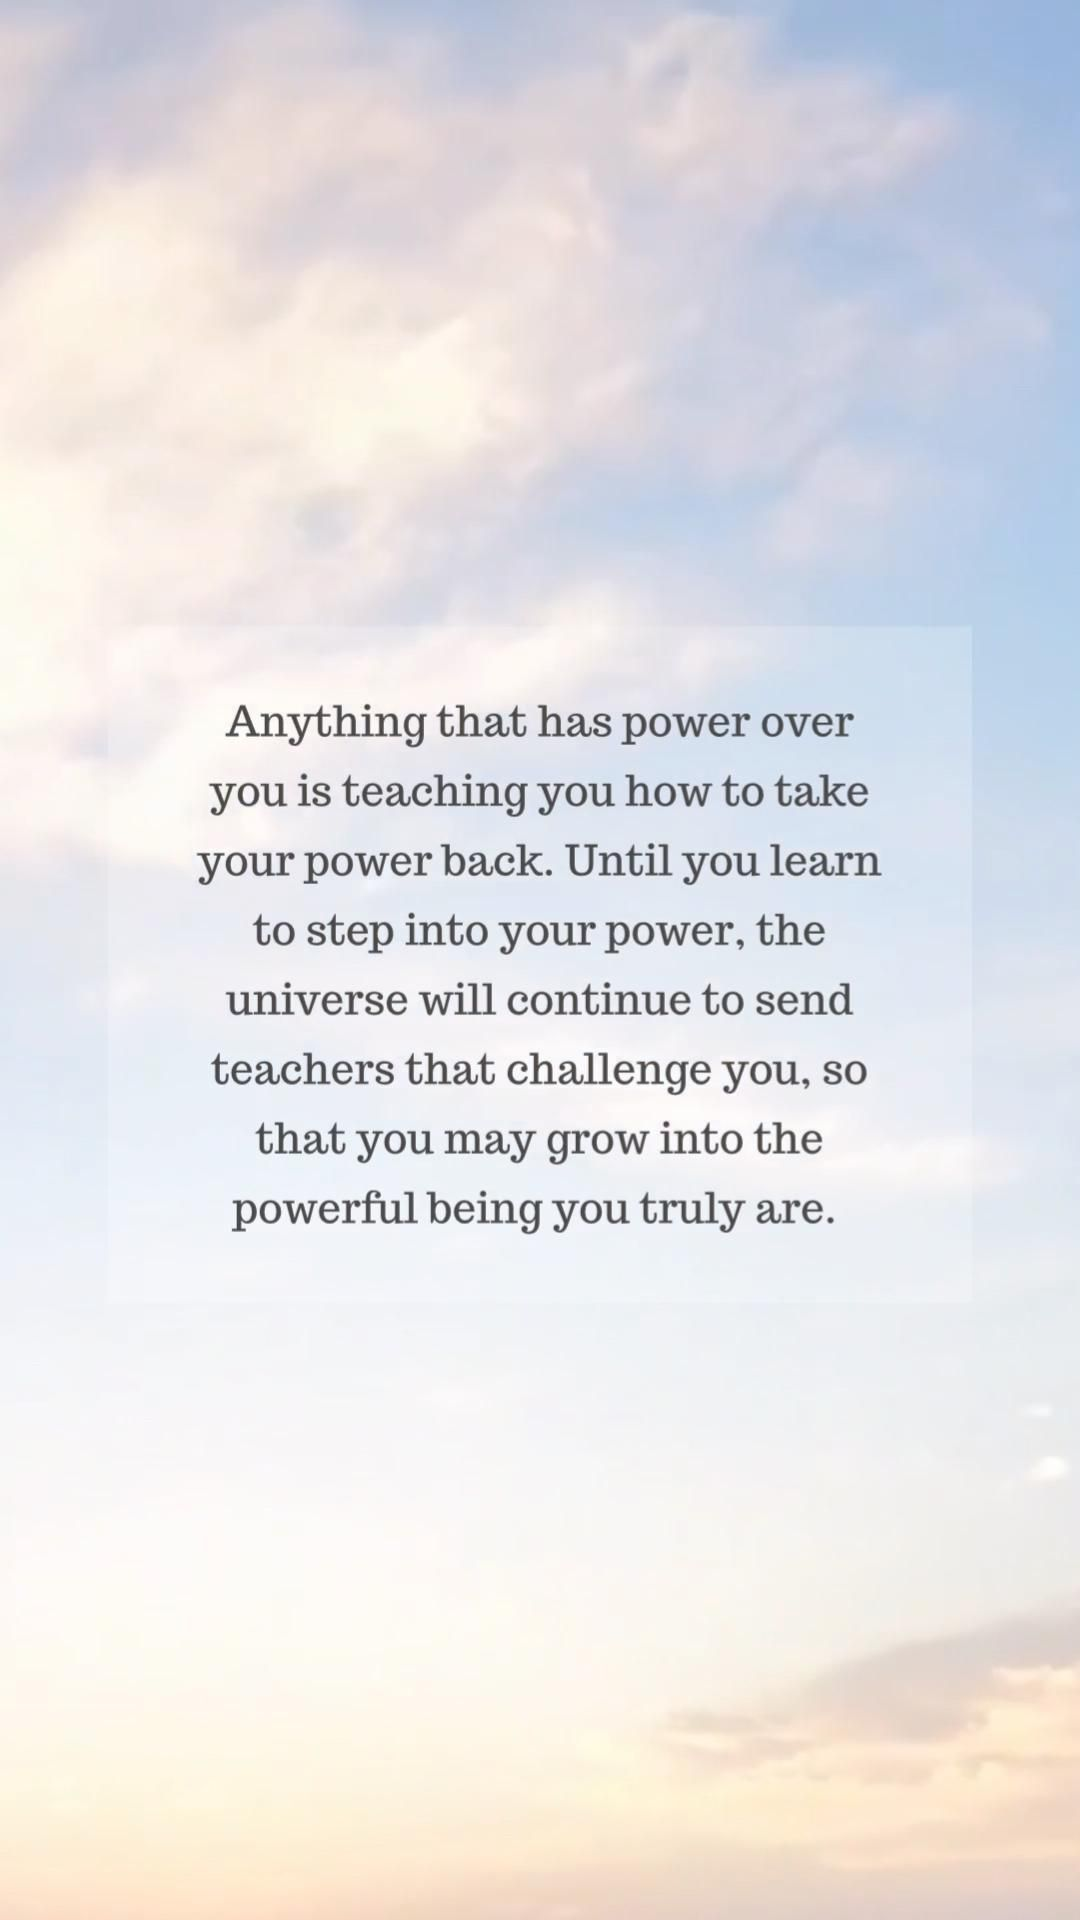 By communicating your needs and boundaries to those who challenge you, you step into your power 💛